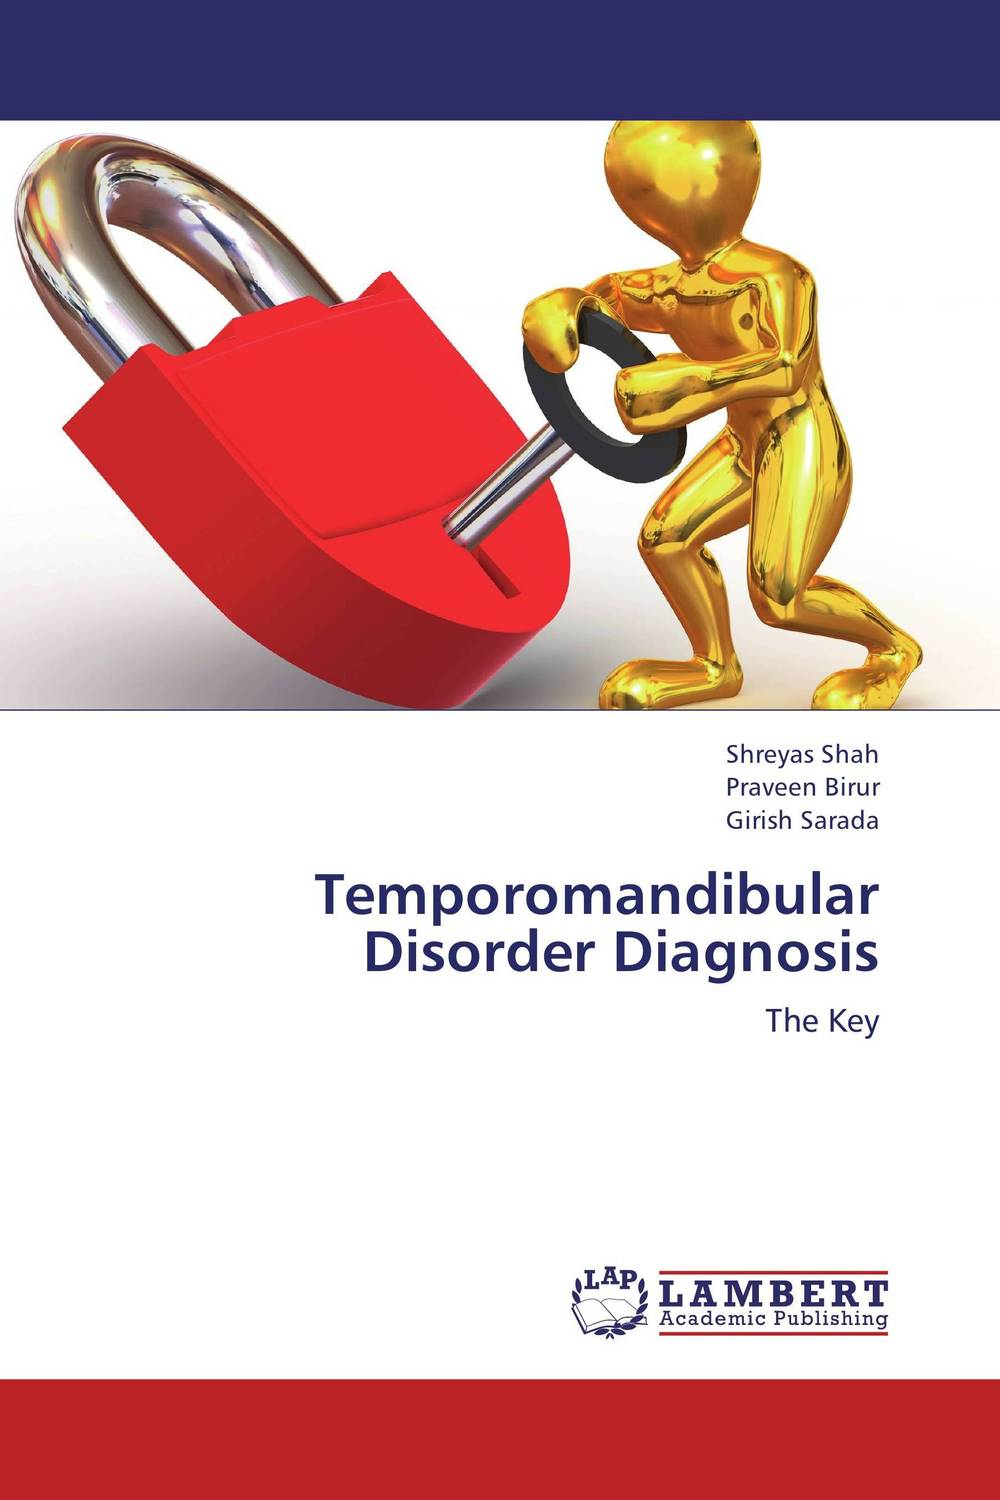 Temporomandibular Disorder Diagnosis temporomandibular disorders and prosthetic replacement of missing teeth